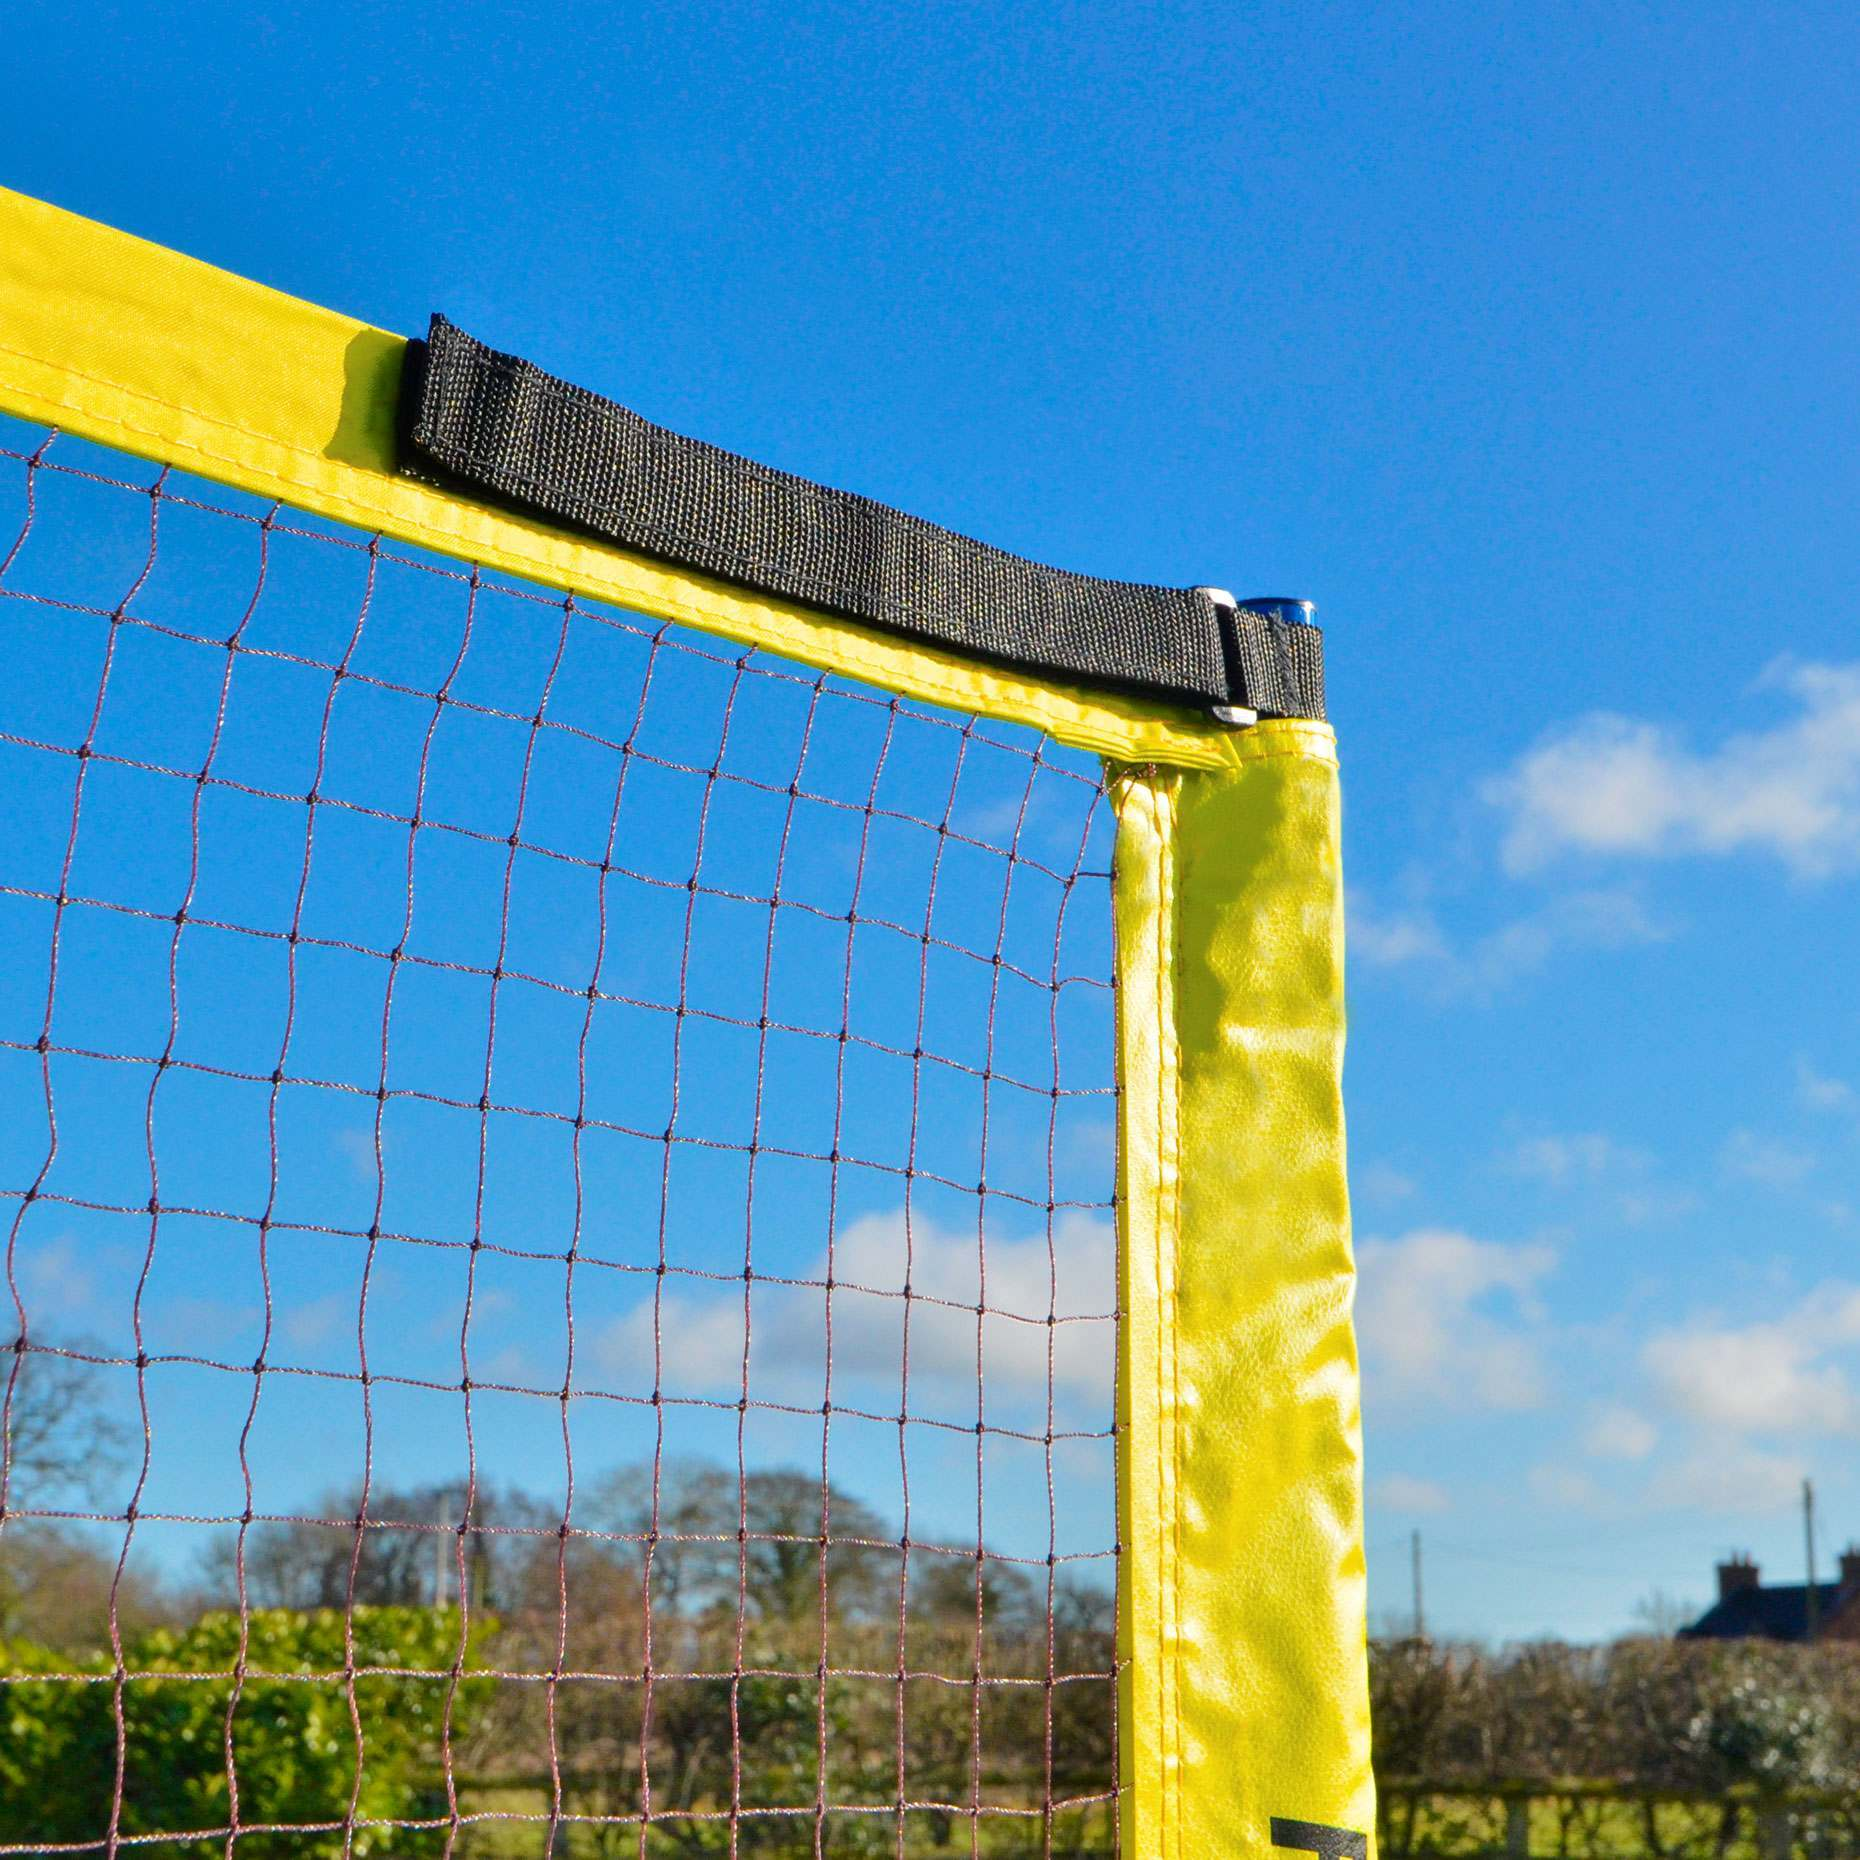 replacement procourt mini nets />